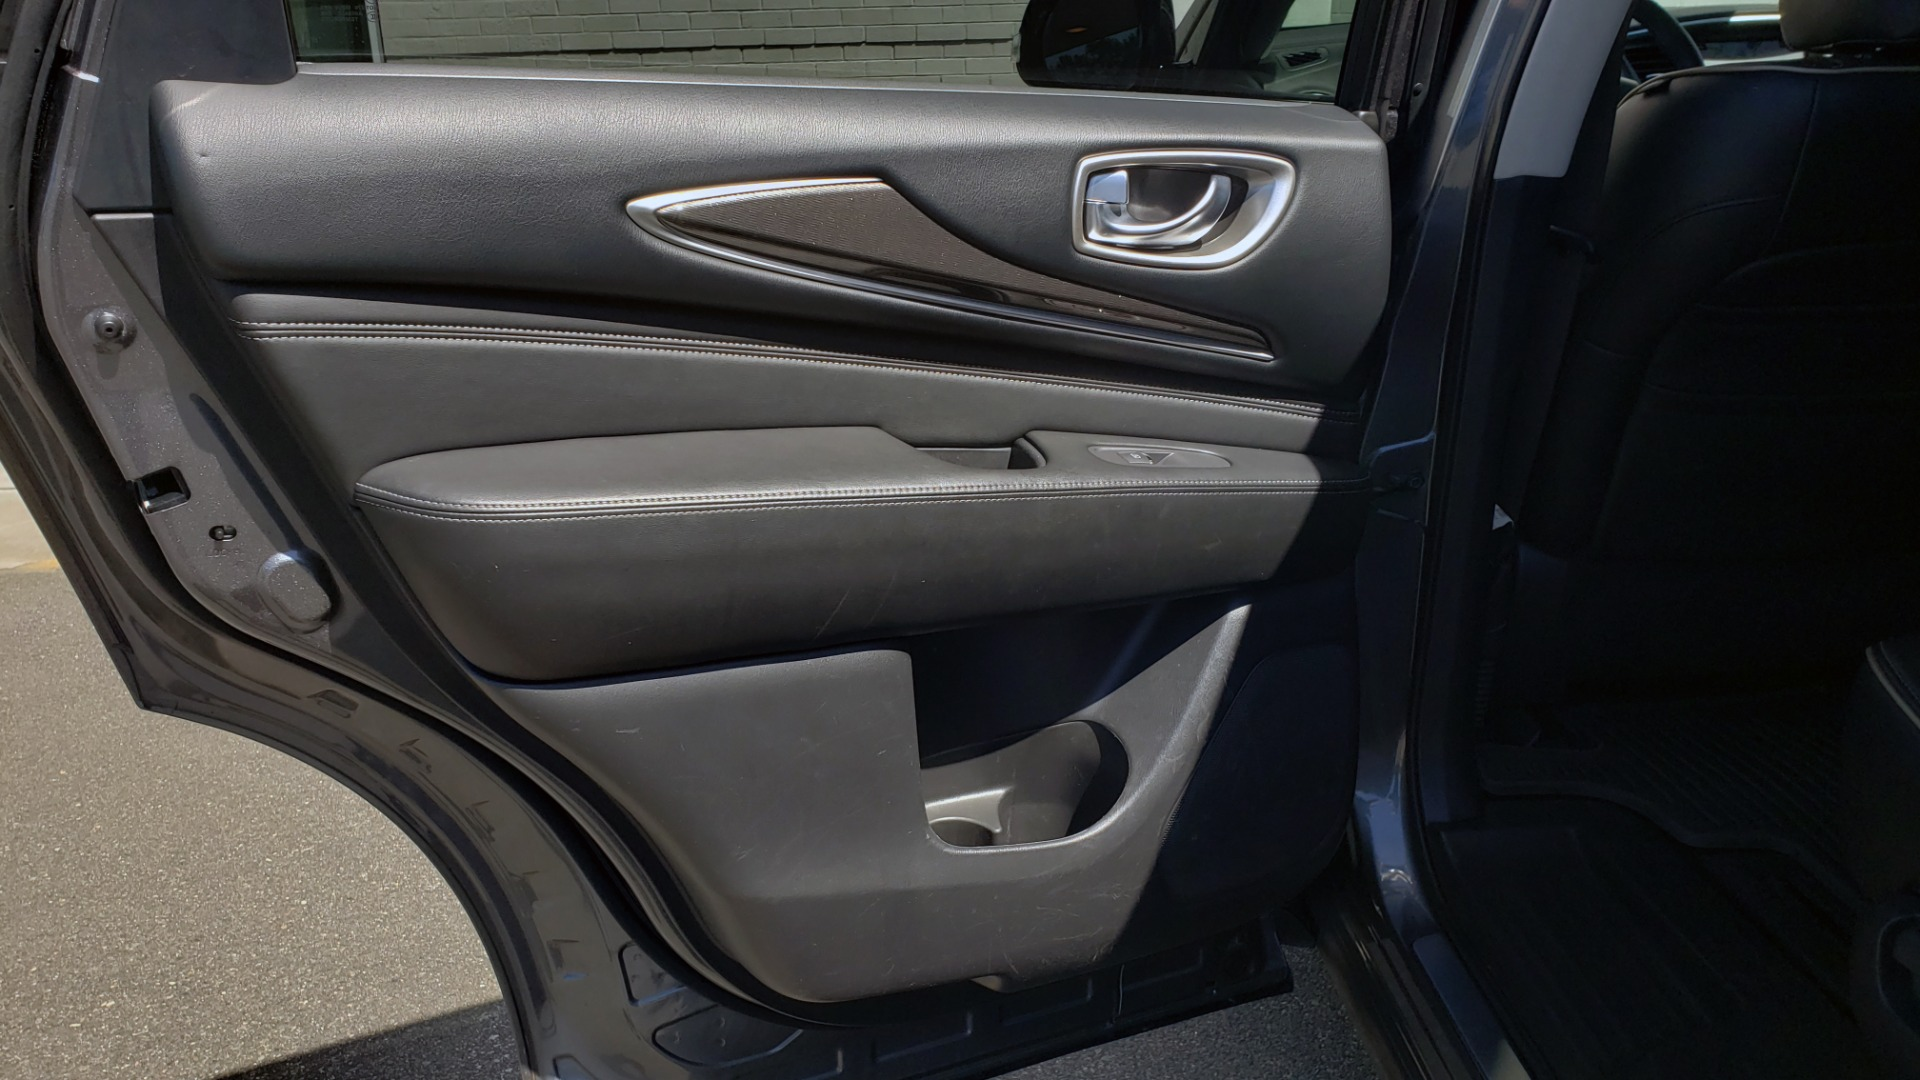 Used 2018 INFINITI QX60 3.5L V6 / FWD / CVT TRANS / NAV / SUNROOF / 3-ROWS / REARVIEW for sale $31,999 at Formula Imports in Charlotte NC 28227 65